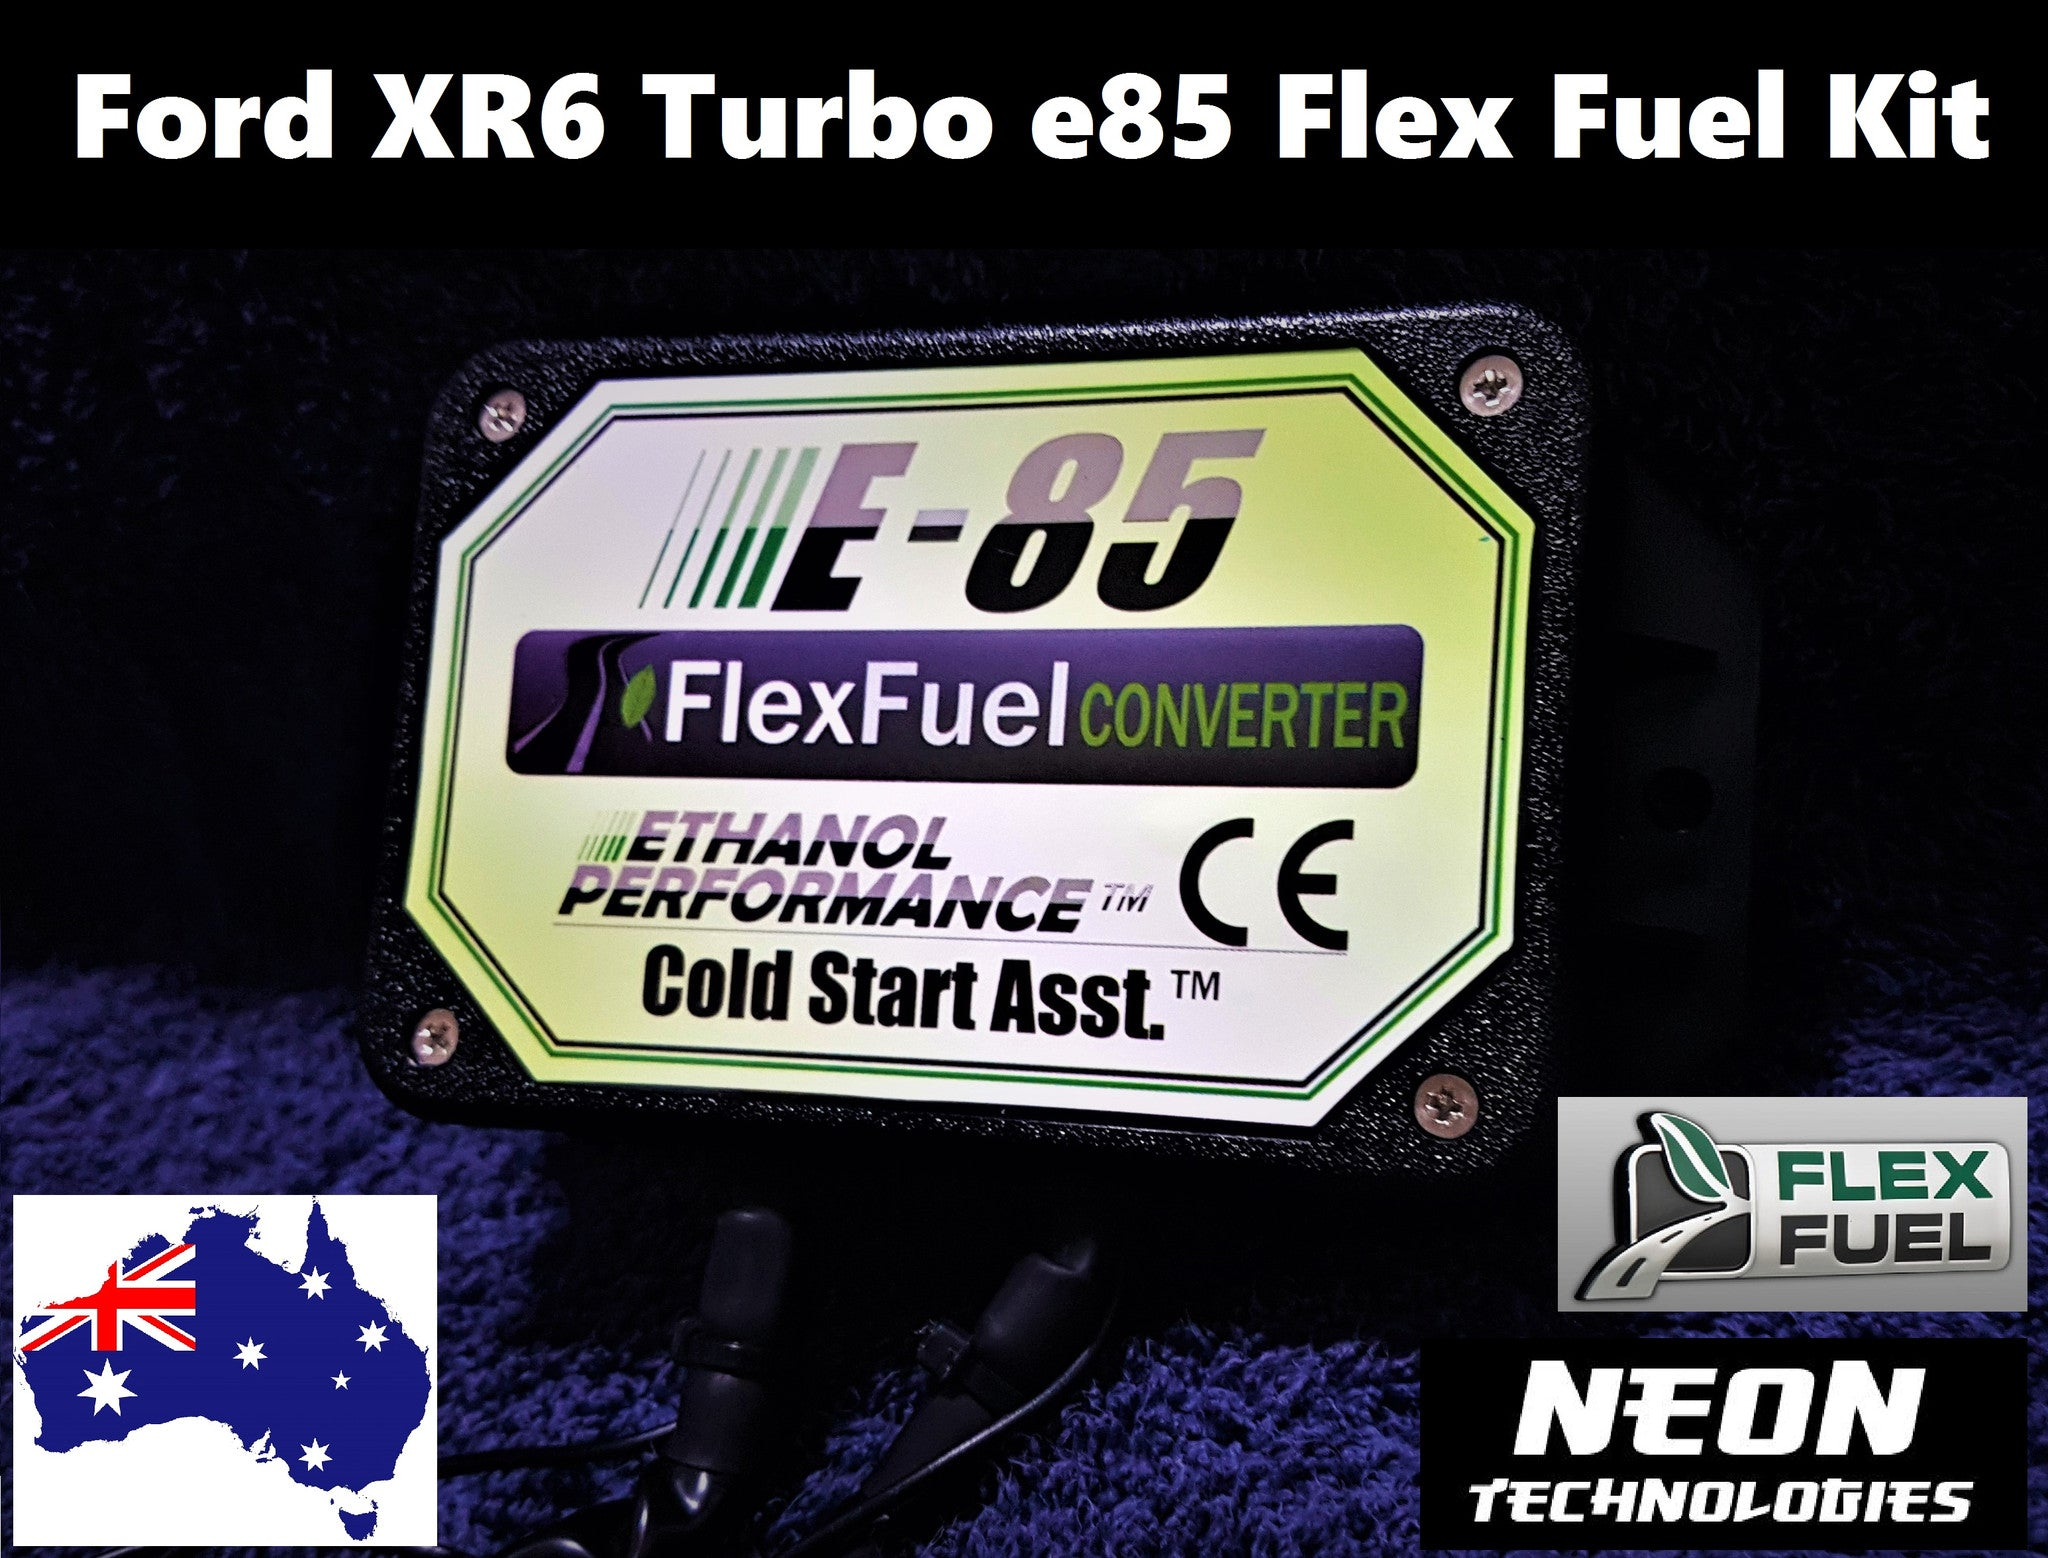 ford xr6 turbo e85 flex fuel conversion kit. Black Bedroom Furniture Sets. Home Design Ideas